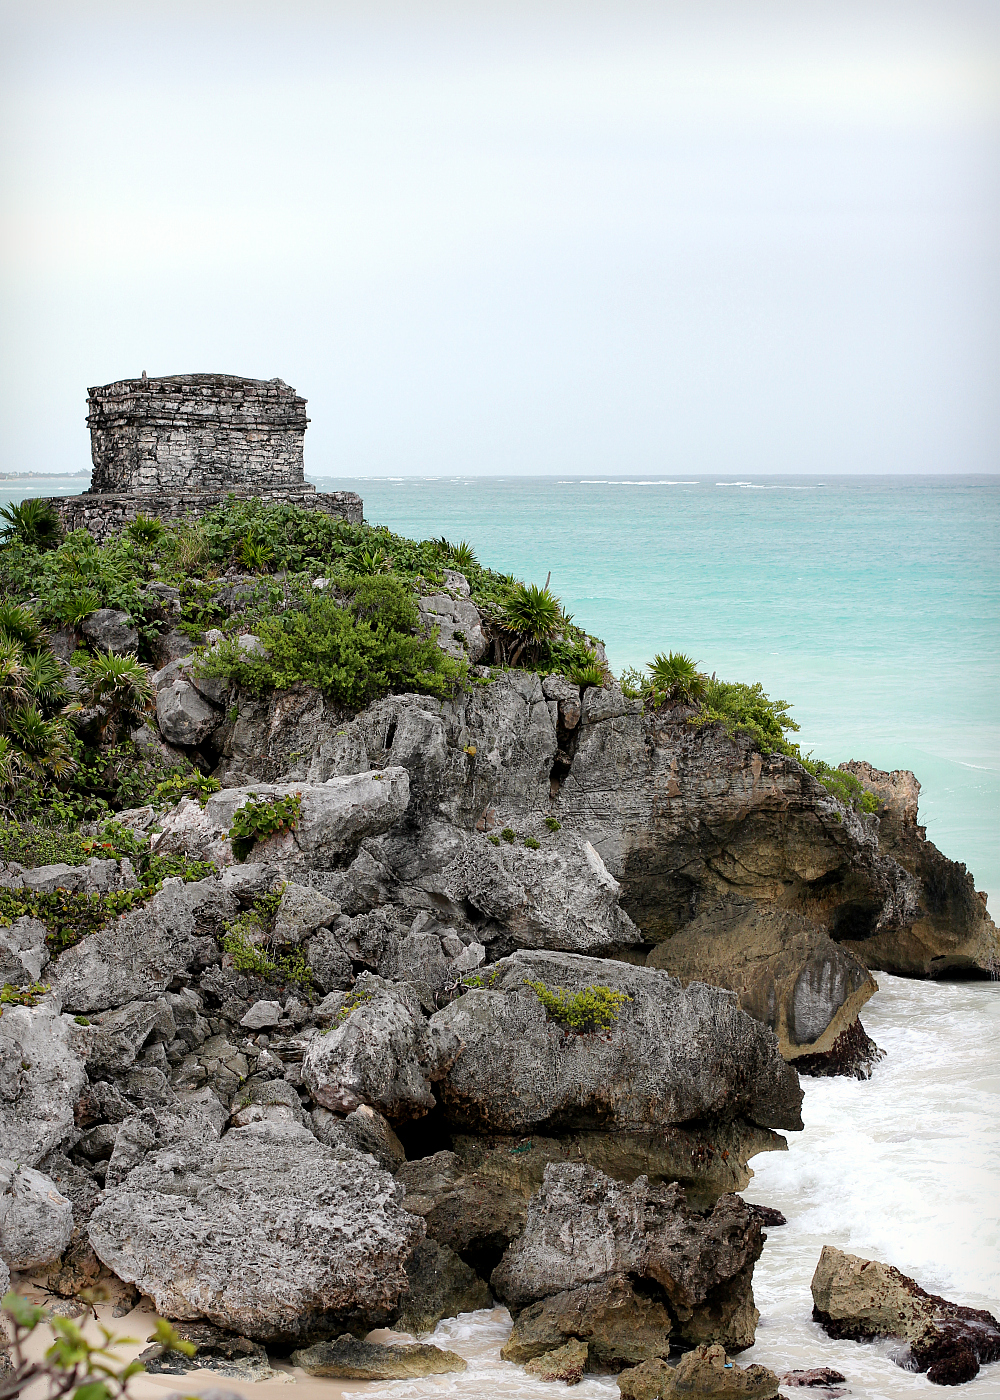 Travel Diary: Mexico - Riviera Maya | The Daily Dose